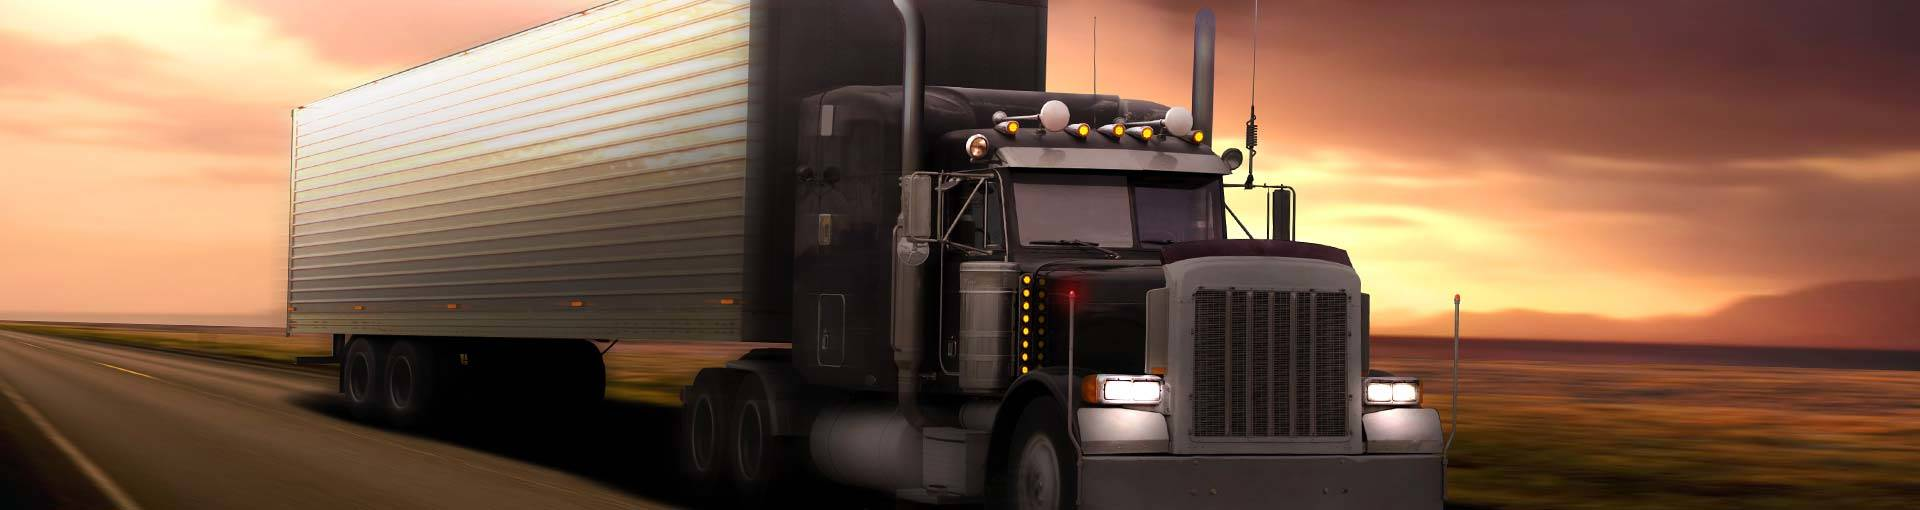 semi truck financing in bc